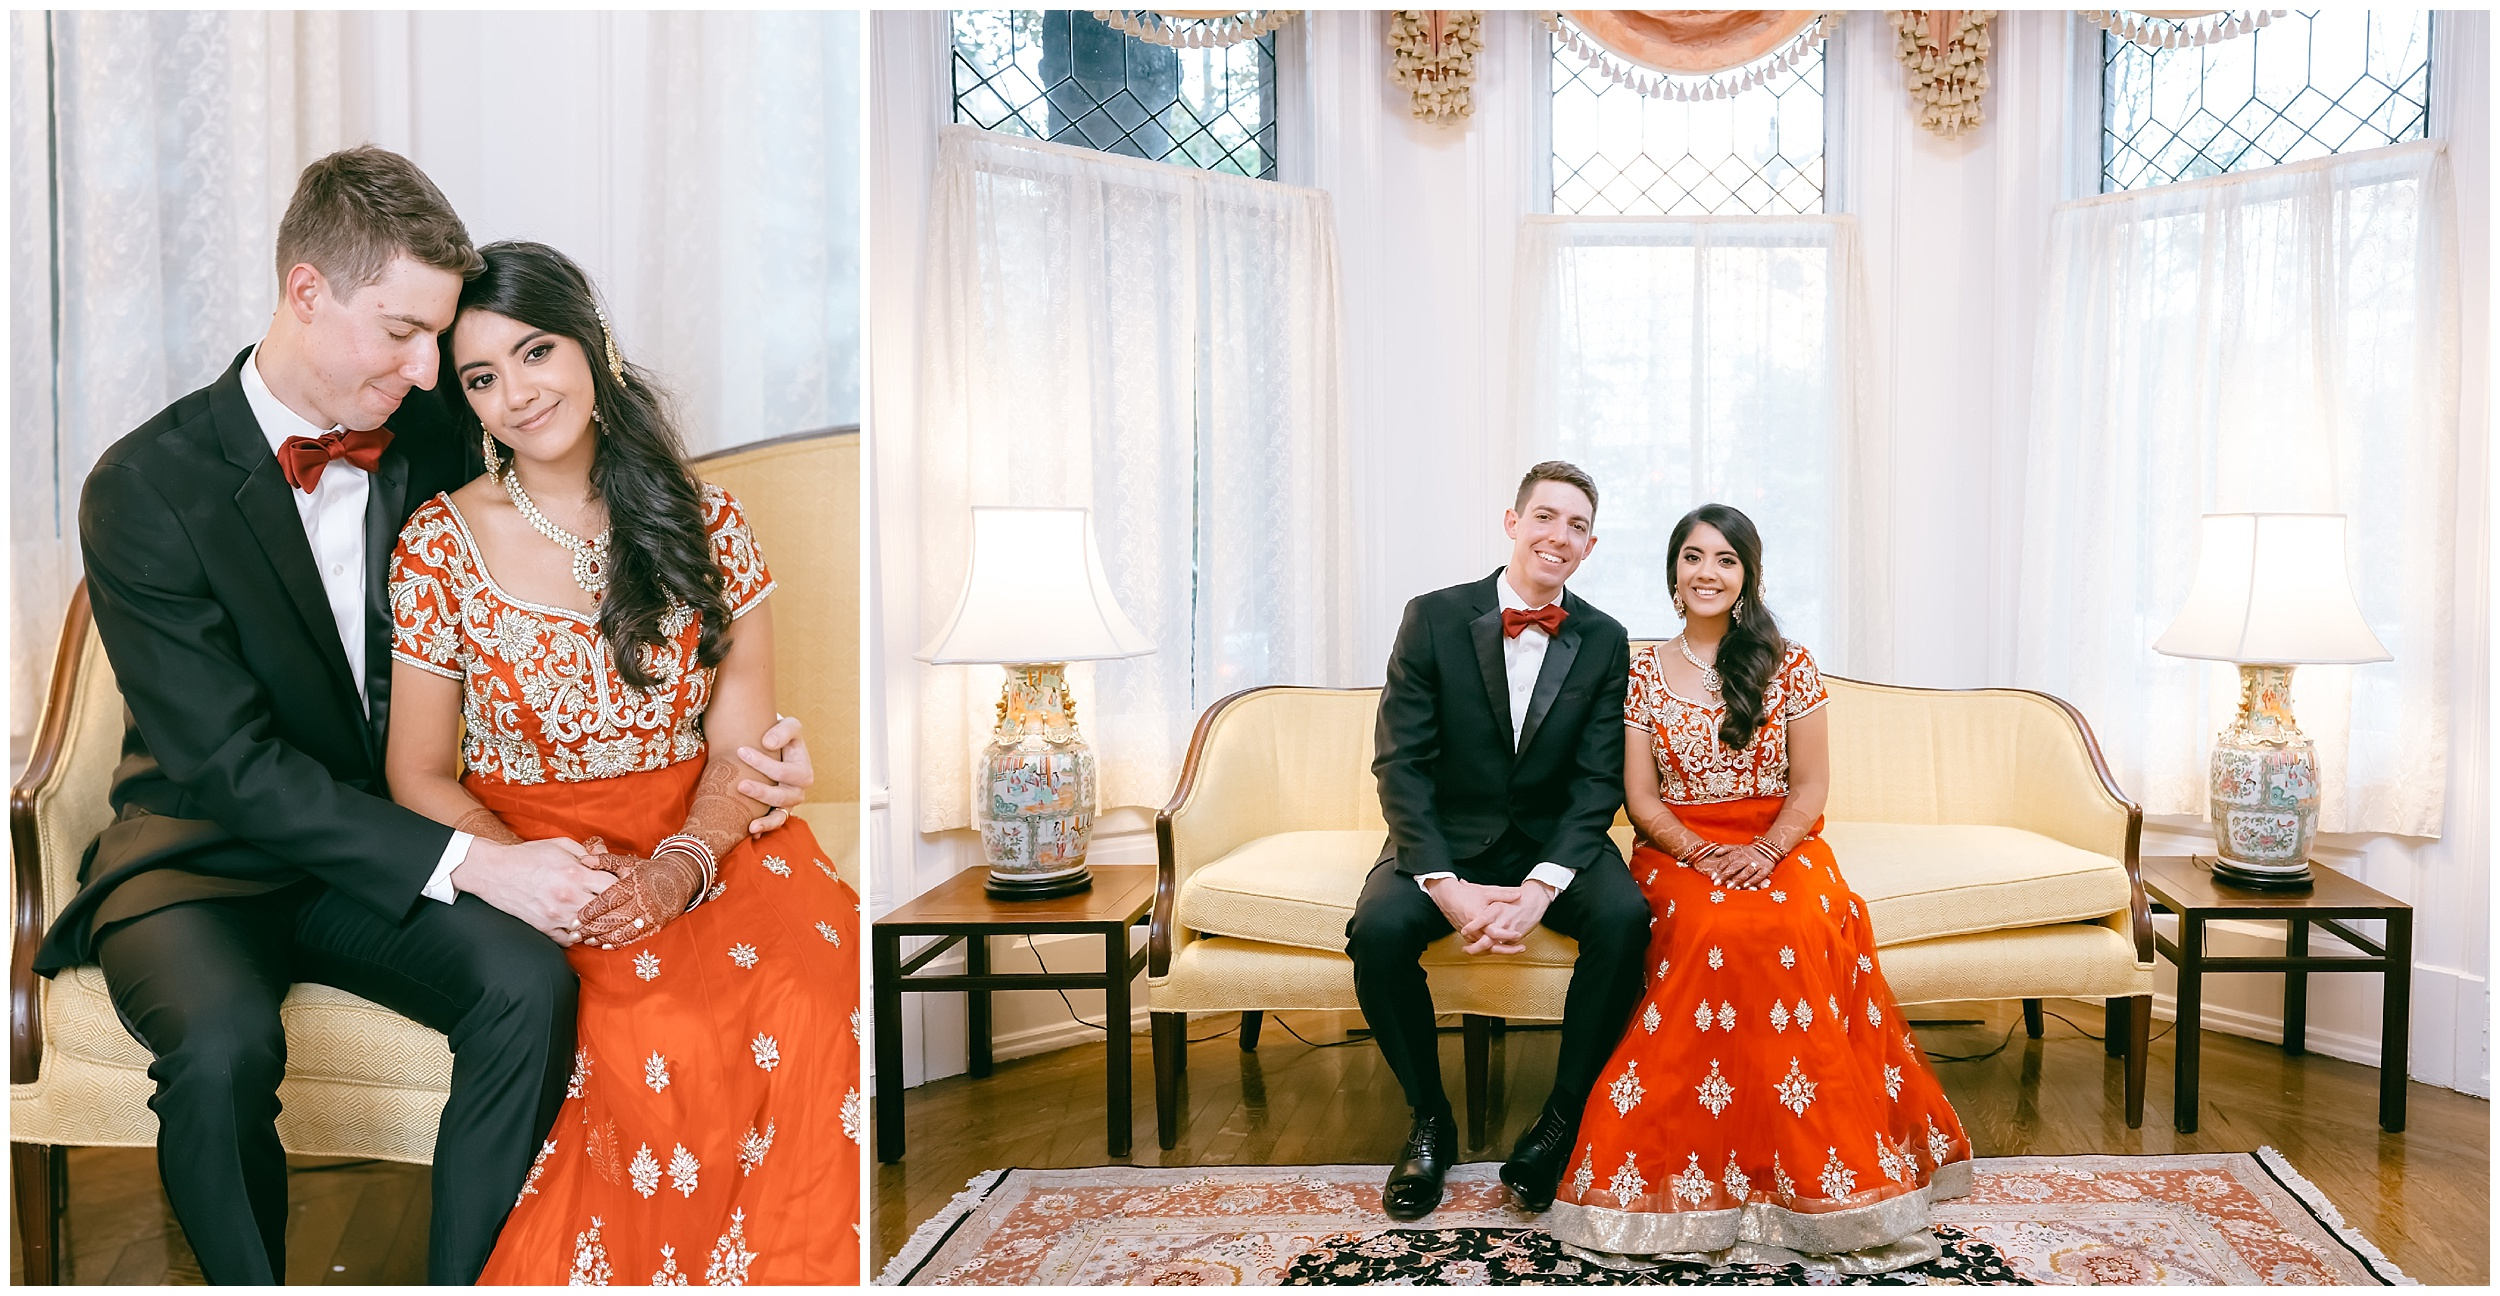 just married portrait formal Whittemore House wedding Washington DC